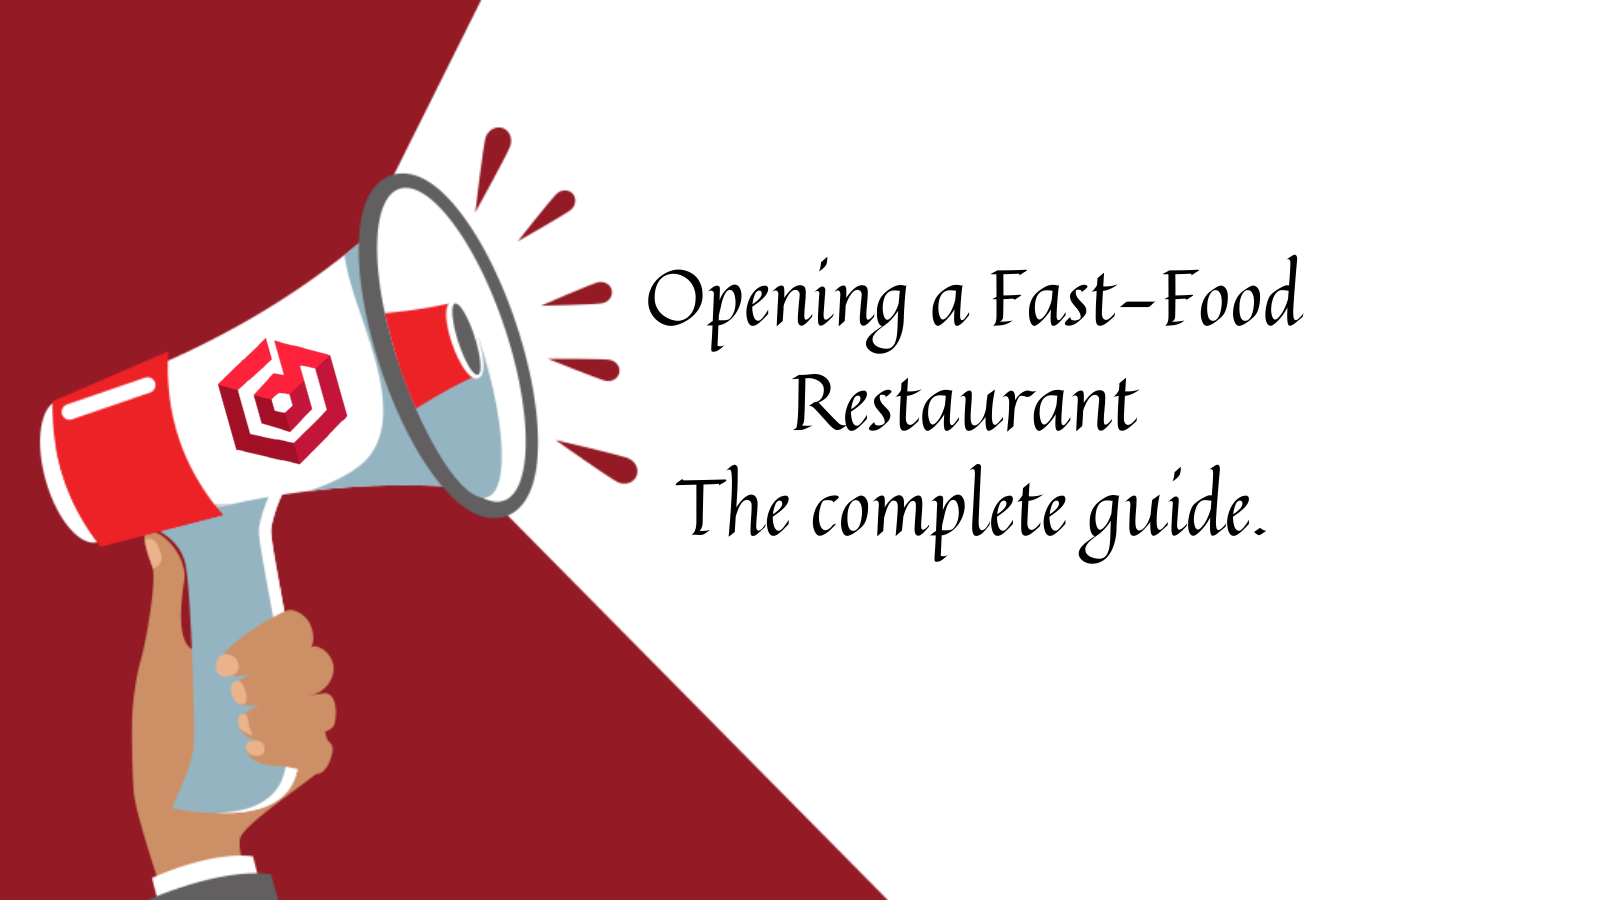 You are currently viewing Opening a fast-food restaurant: The complete guide.